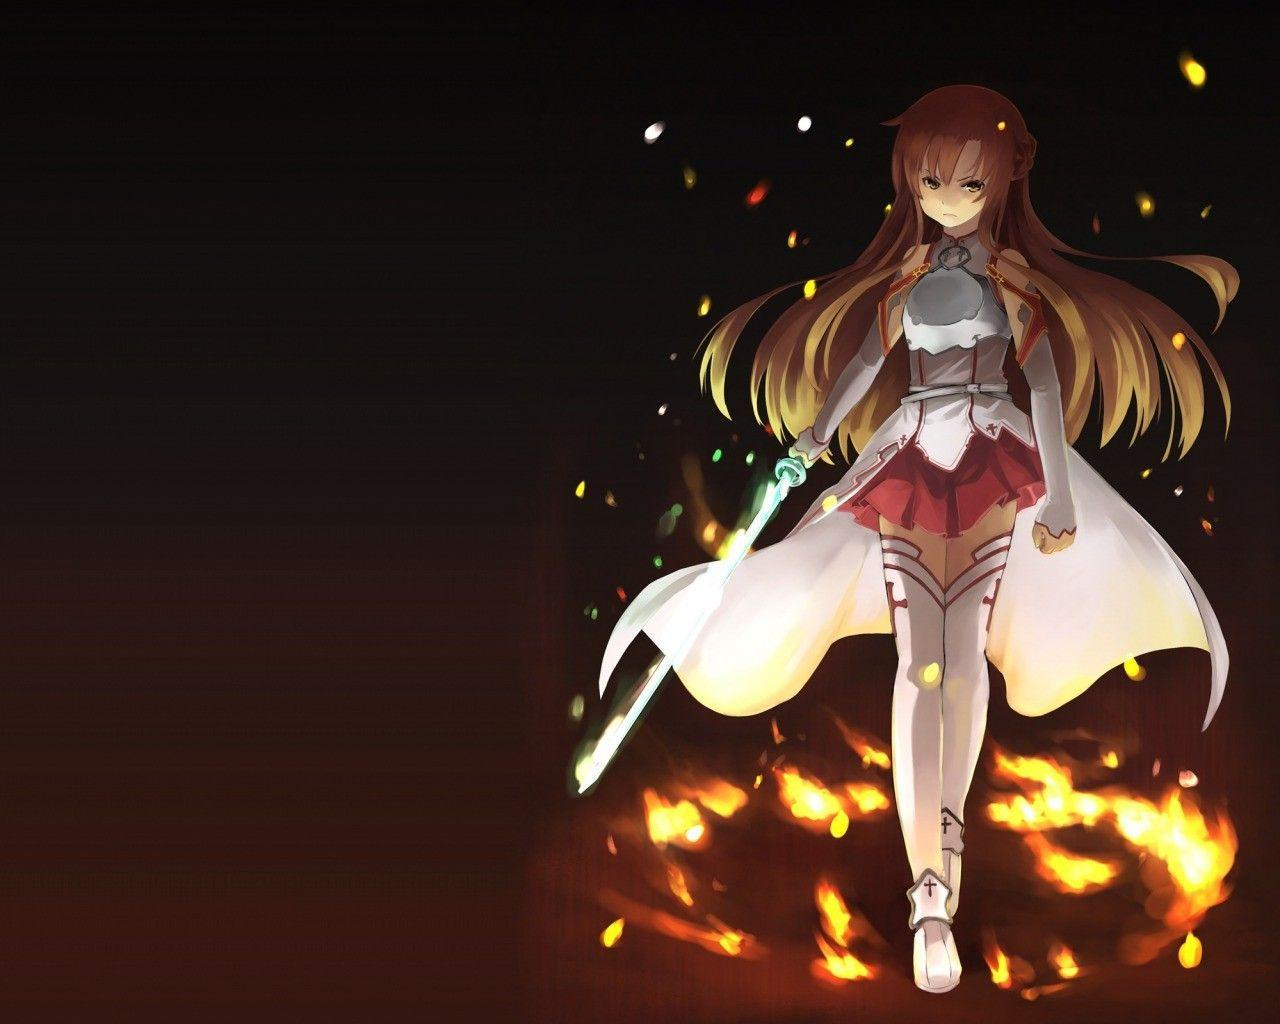 Asuna wallpapers – wallpapers free download